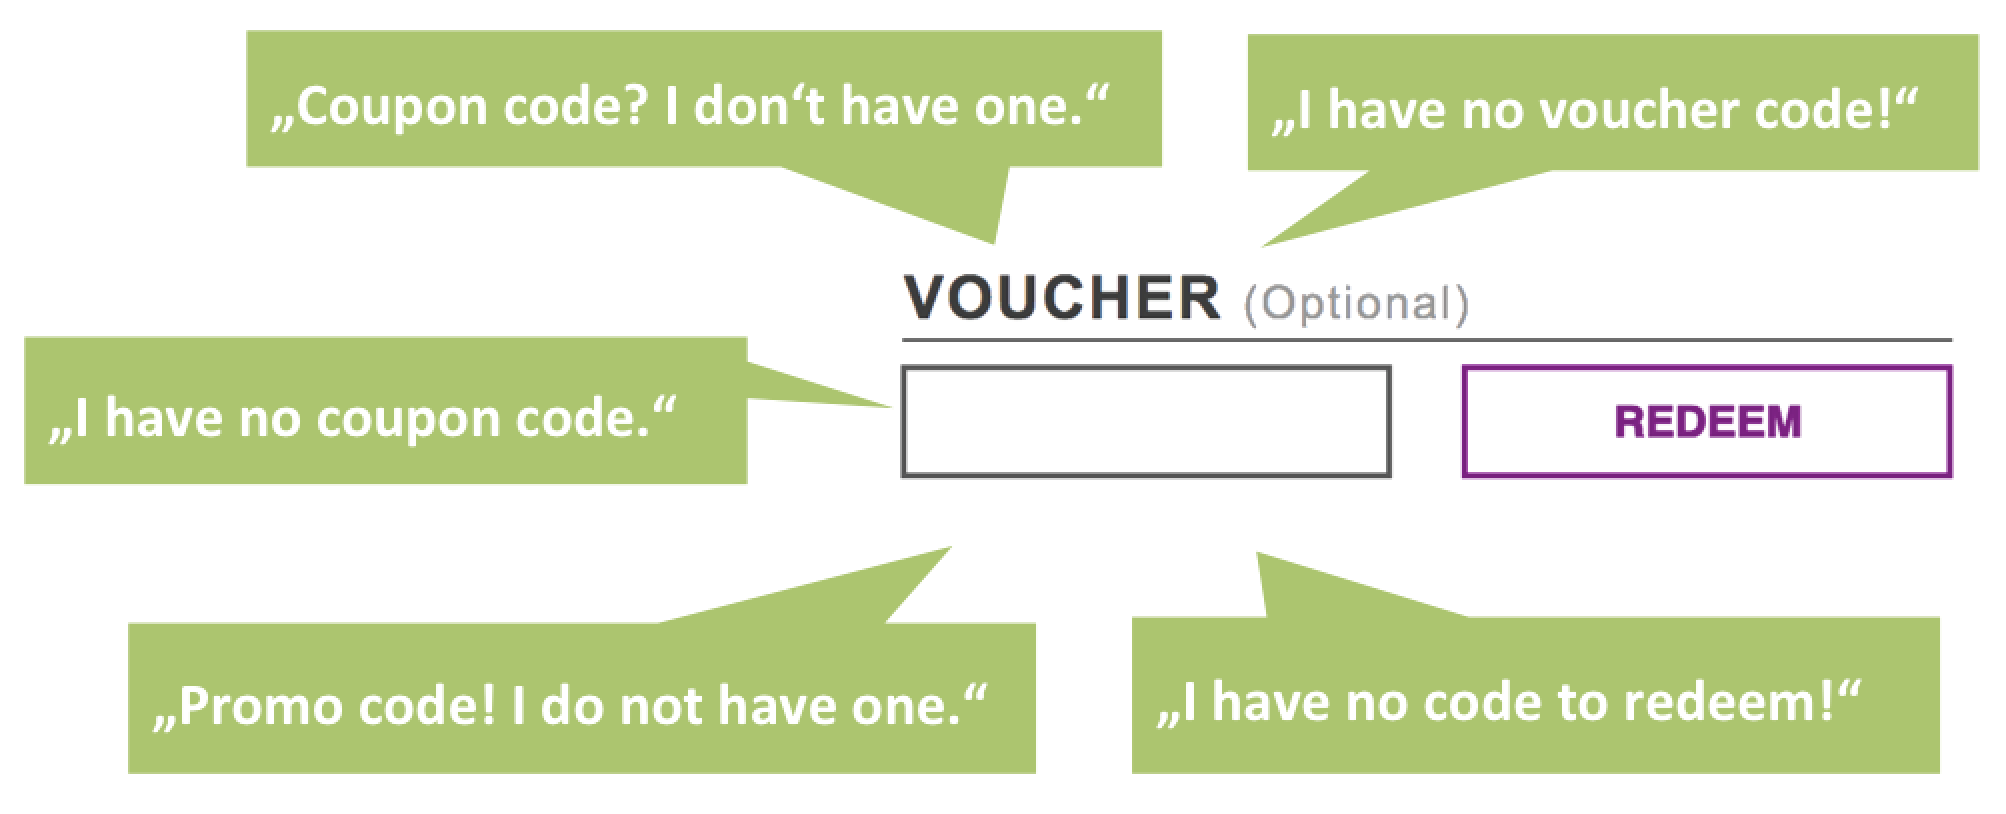 Use Free Vouchers Online For Low-Cost Online Shopping